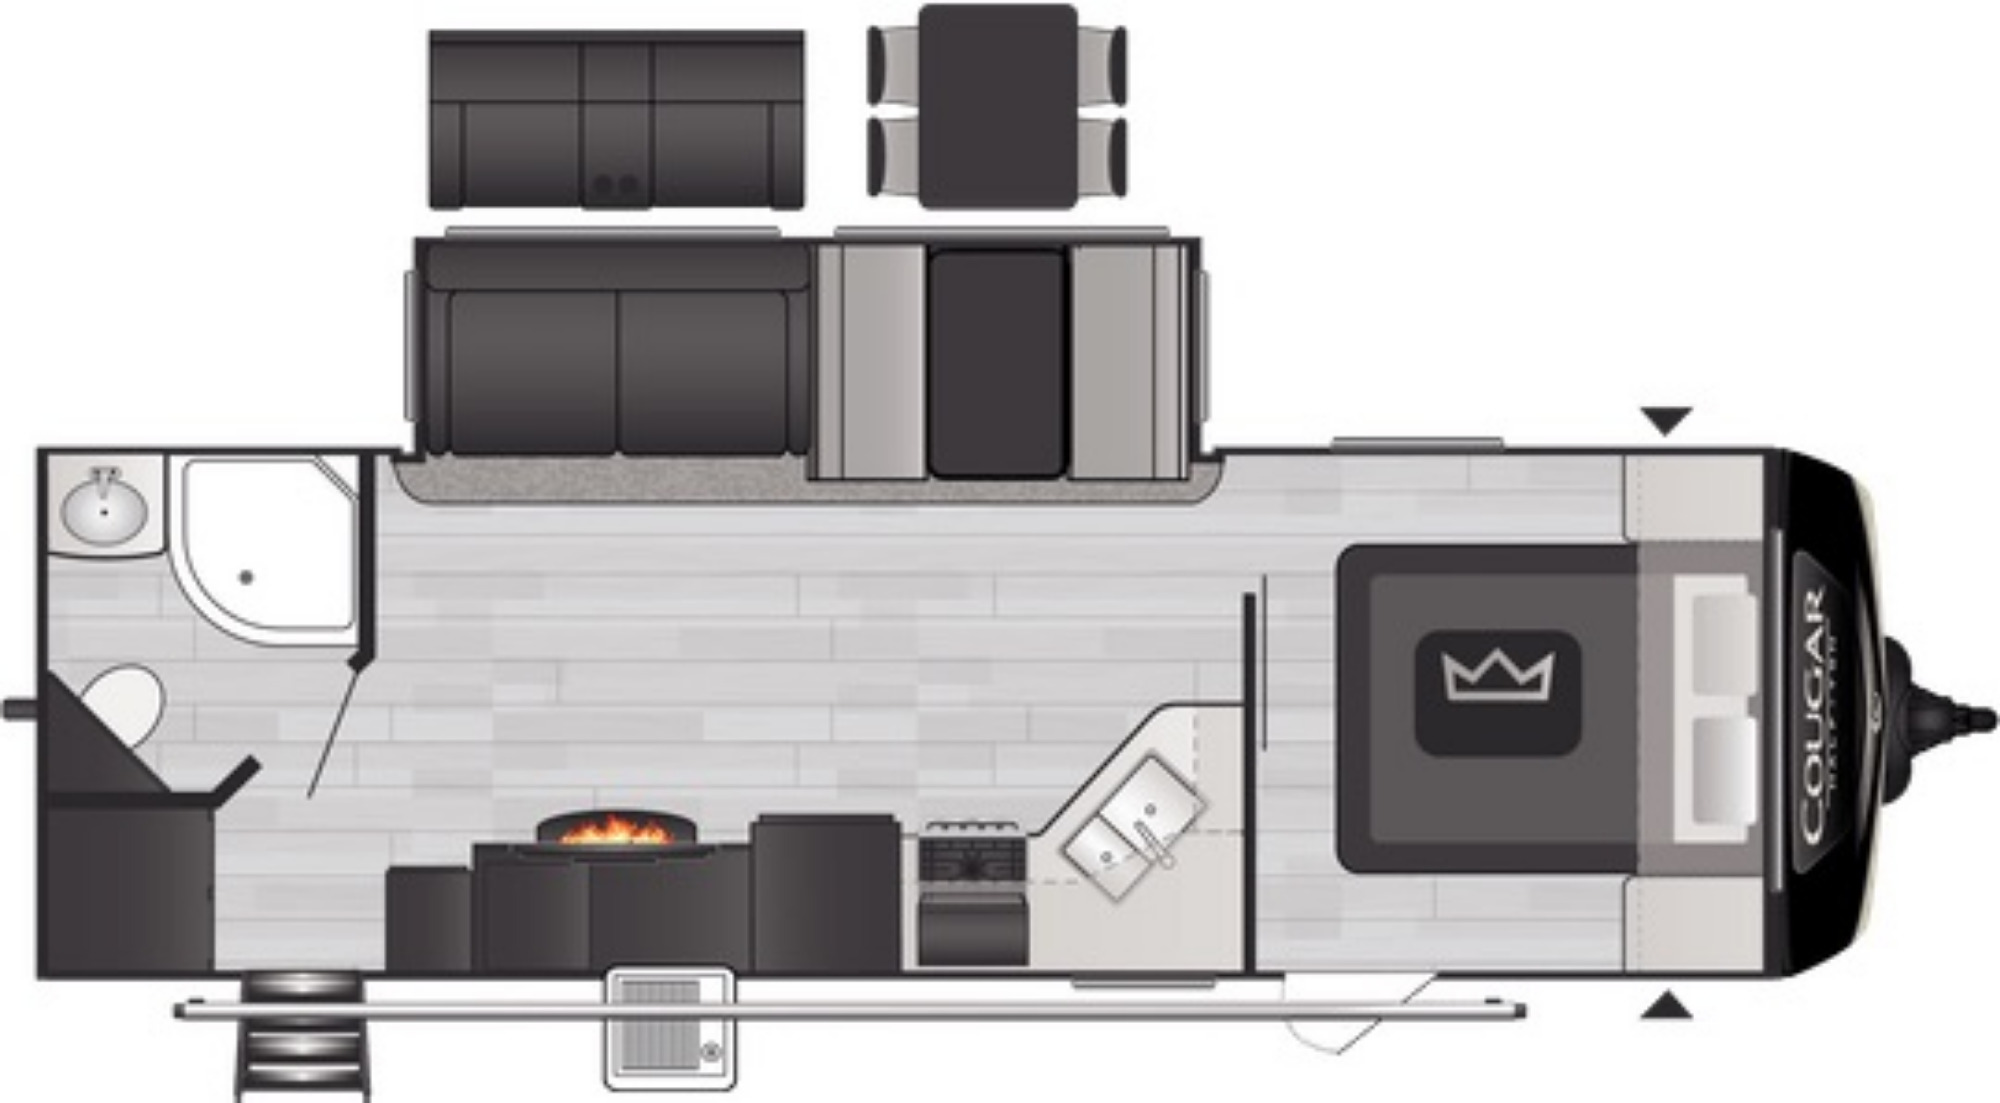 View Floor Plan for 2021 KEYSTONE COUGAR 26RBS